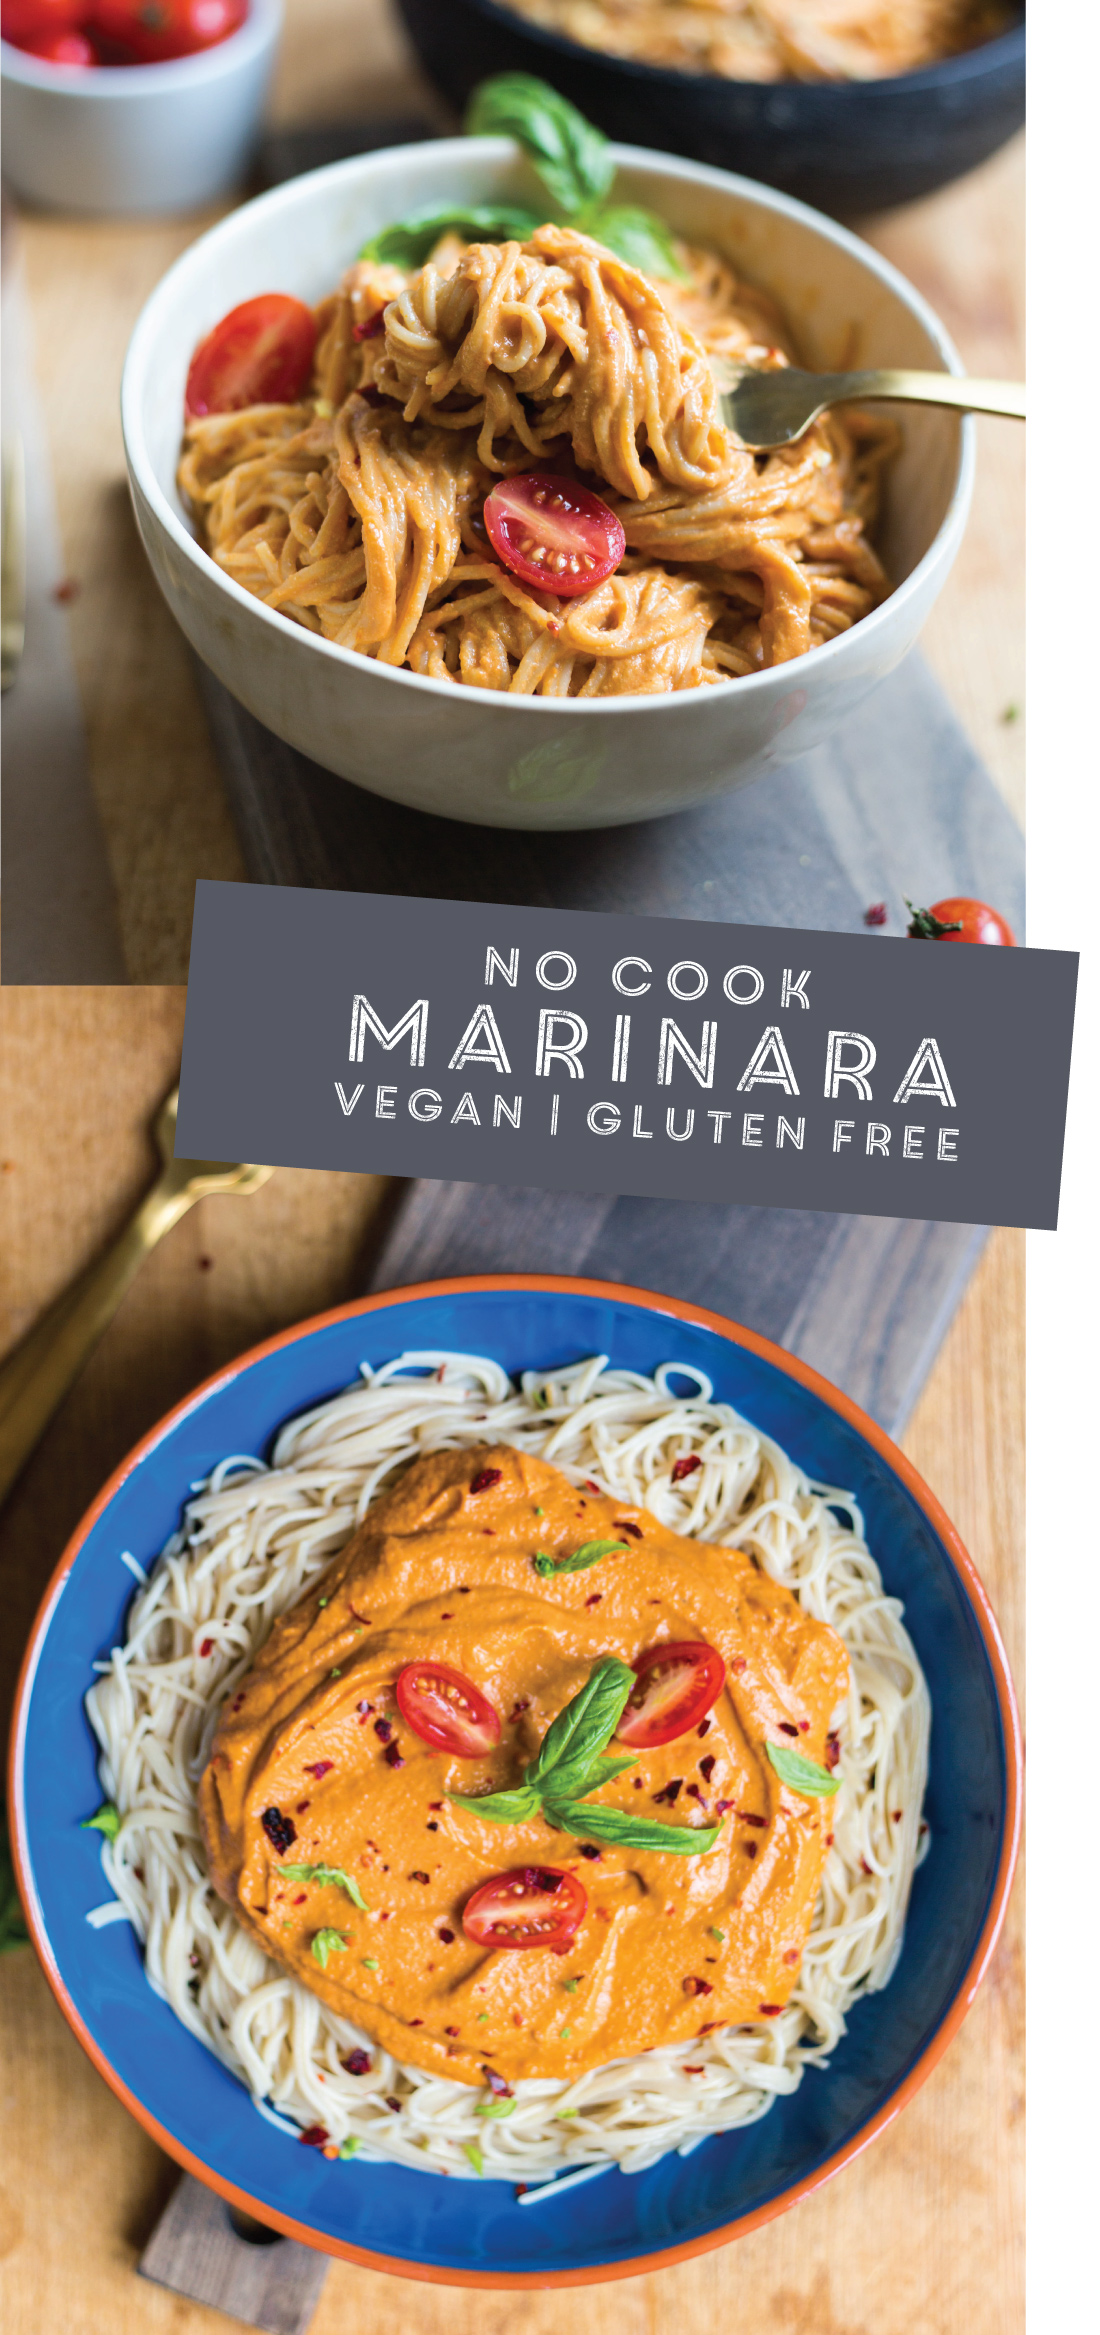 no cook marinara sauce #vegan #gluten-free #familyfriendly | ready in minutes | recipe via #puremamas